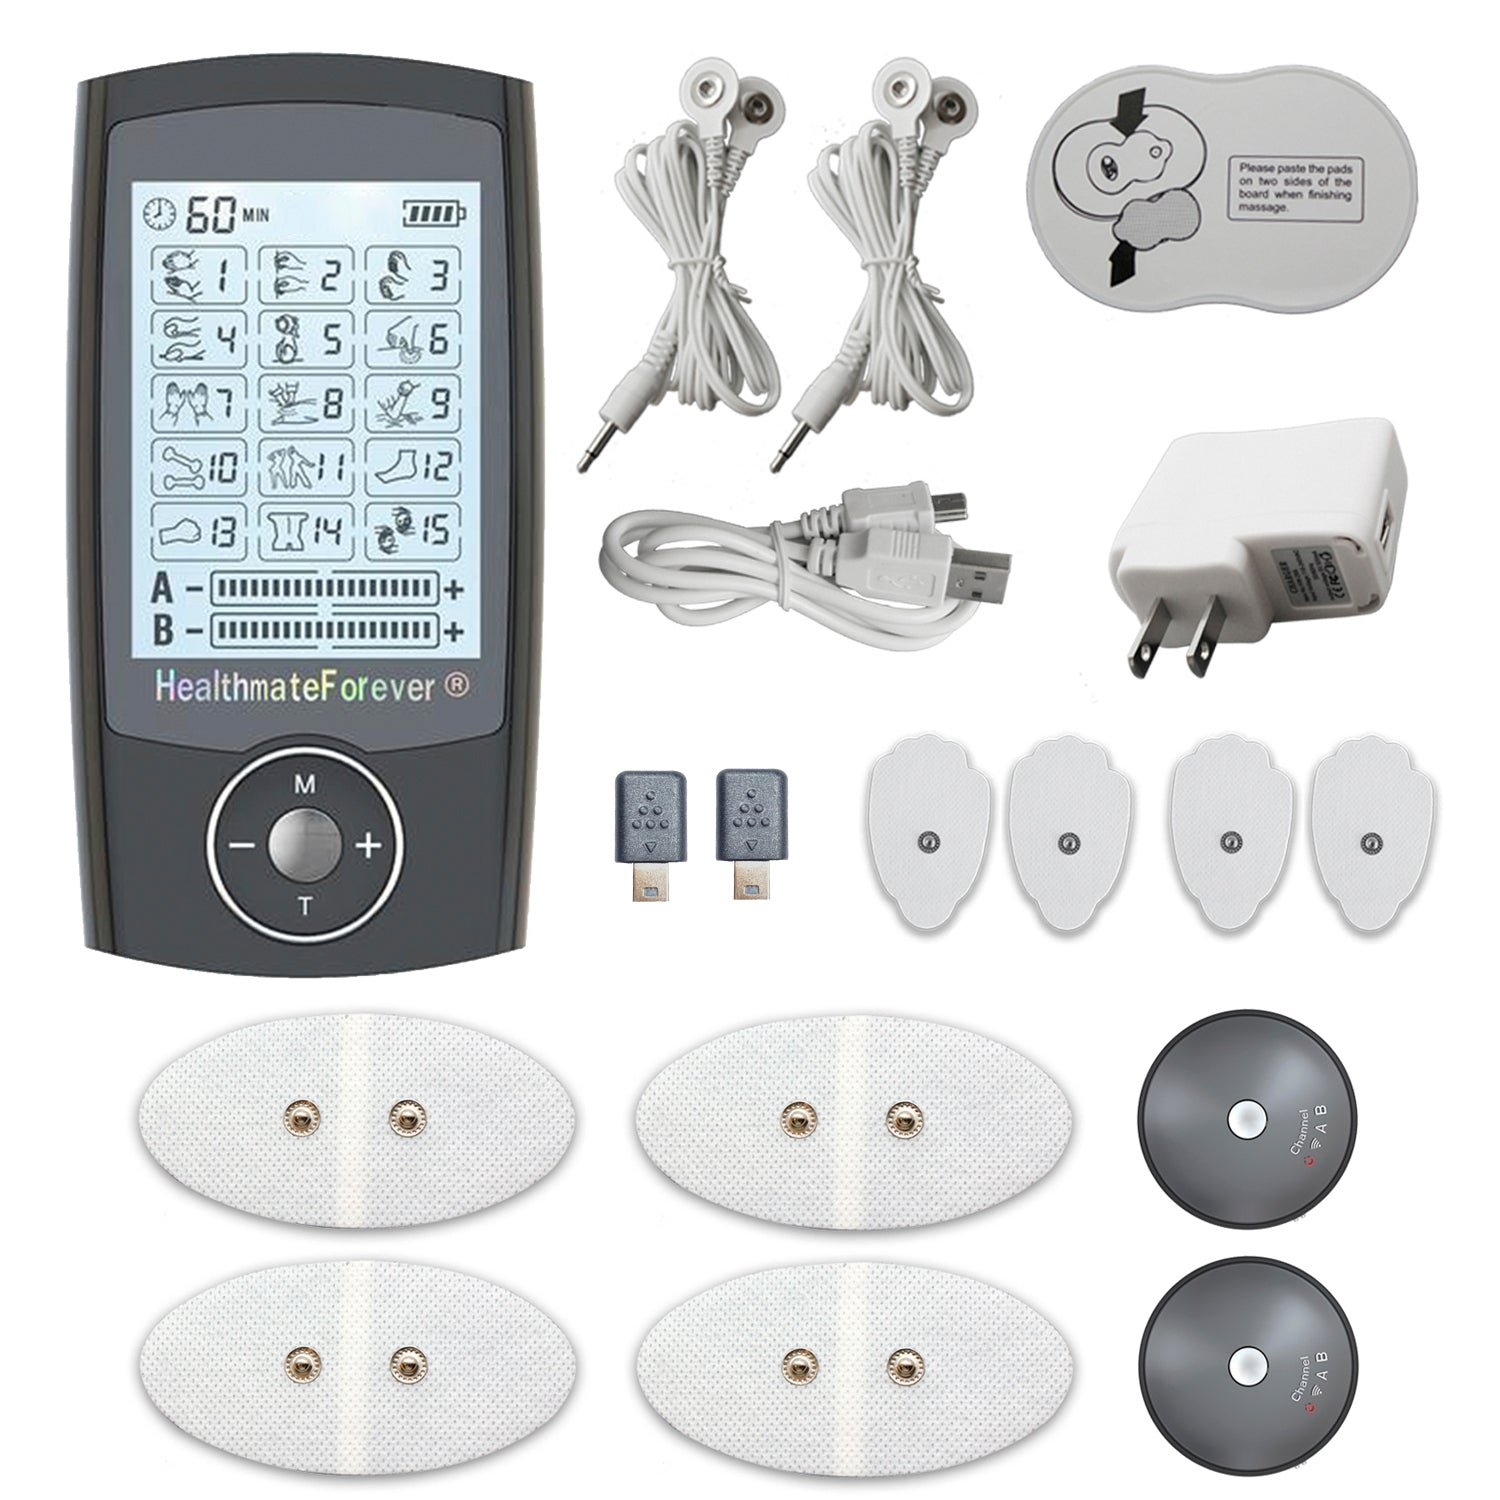 PRO15AB Pain Relief TENS Unit & Muscle Stimulator for reconditioning - 2 Year Warranty - HealthmateForever.com